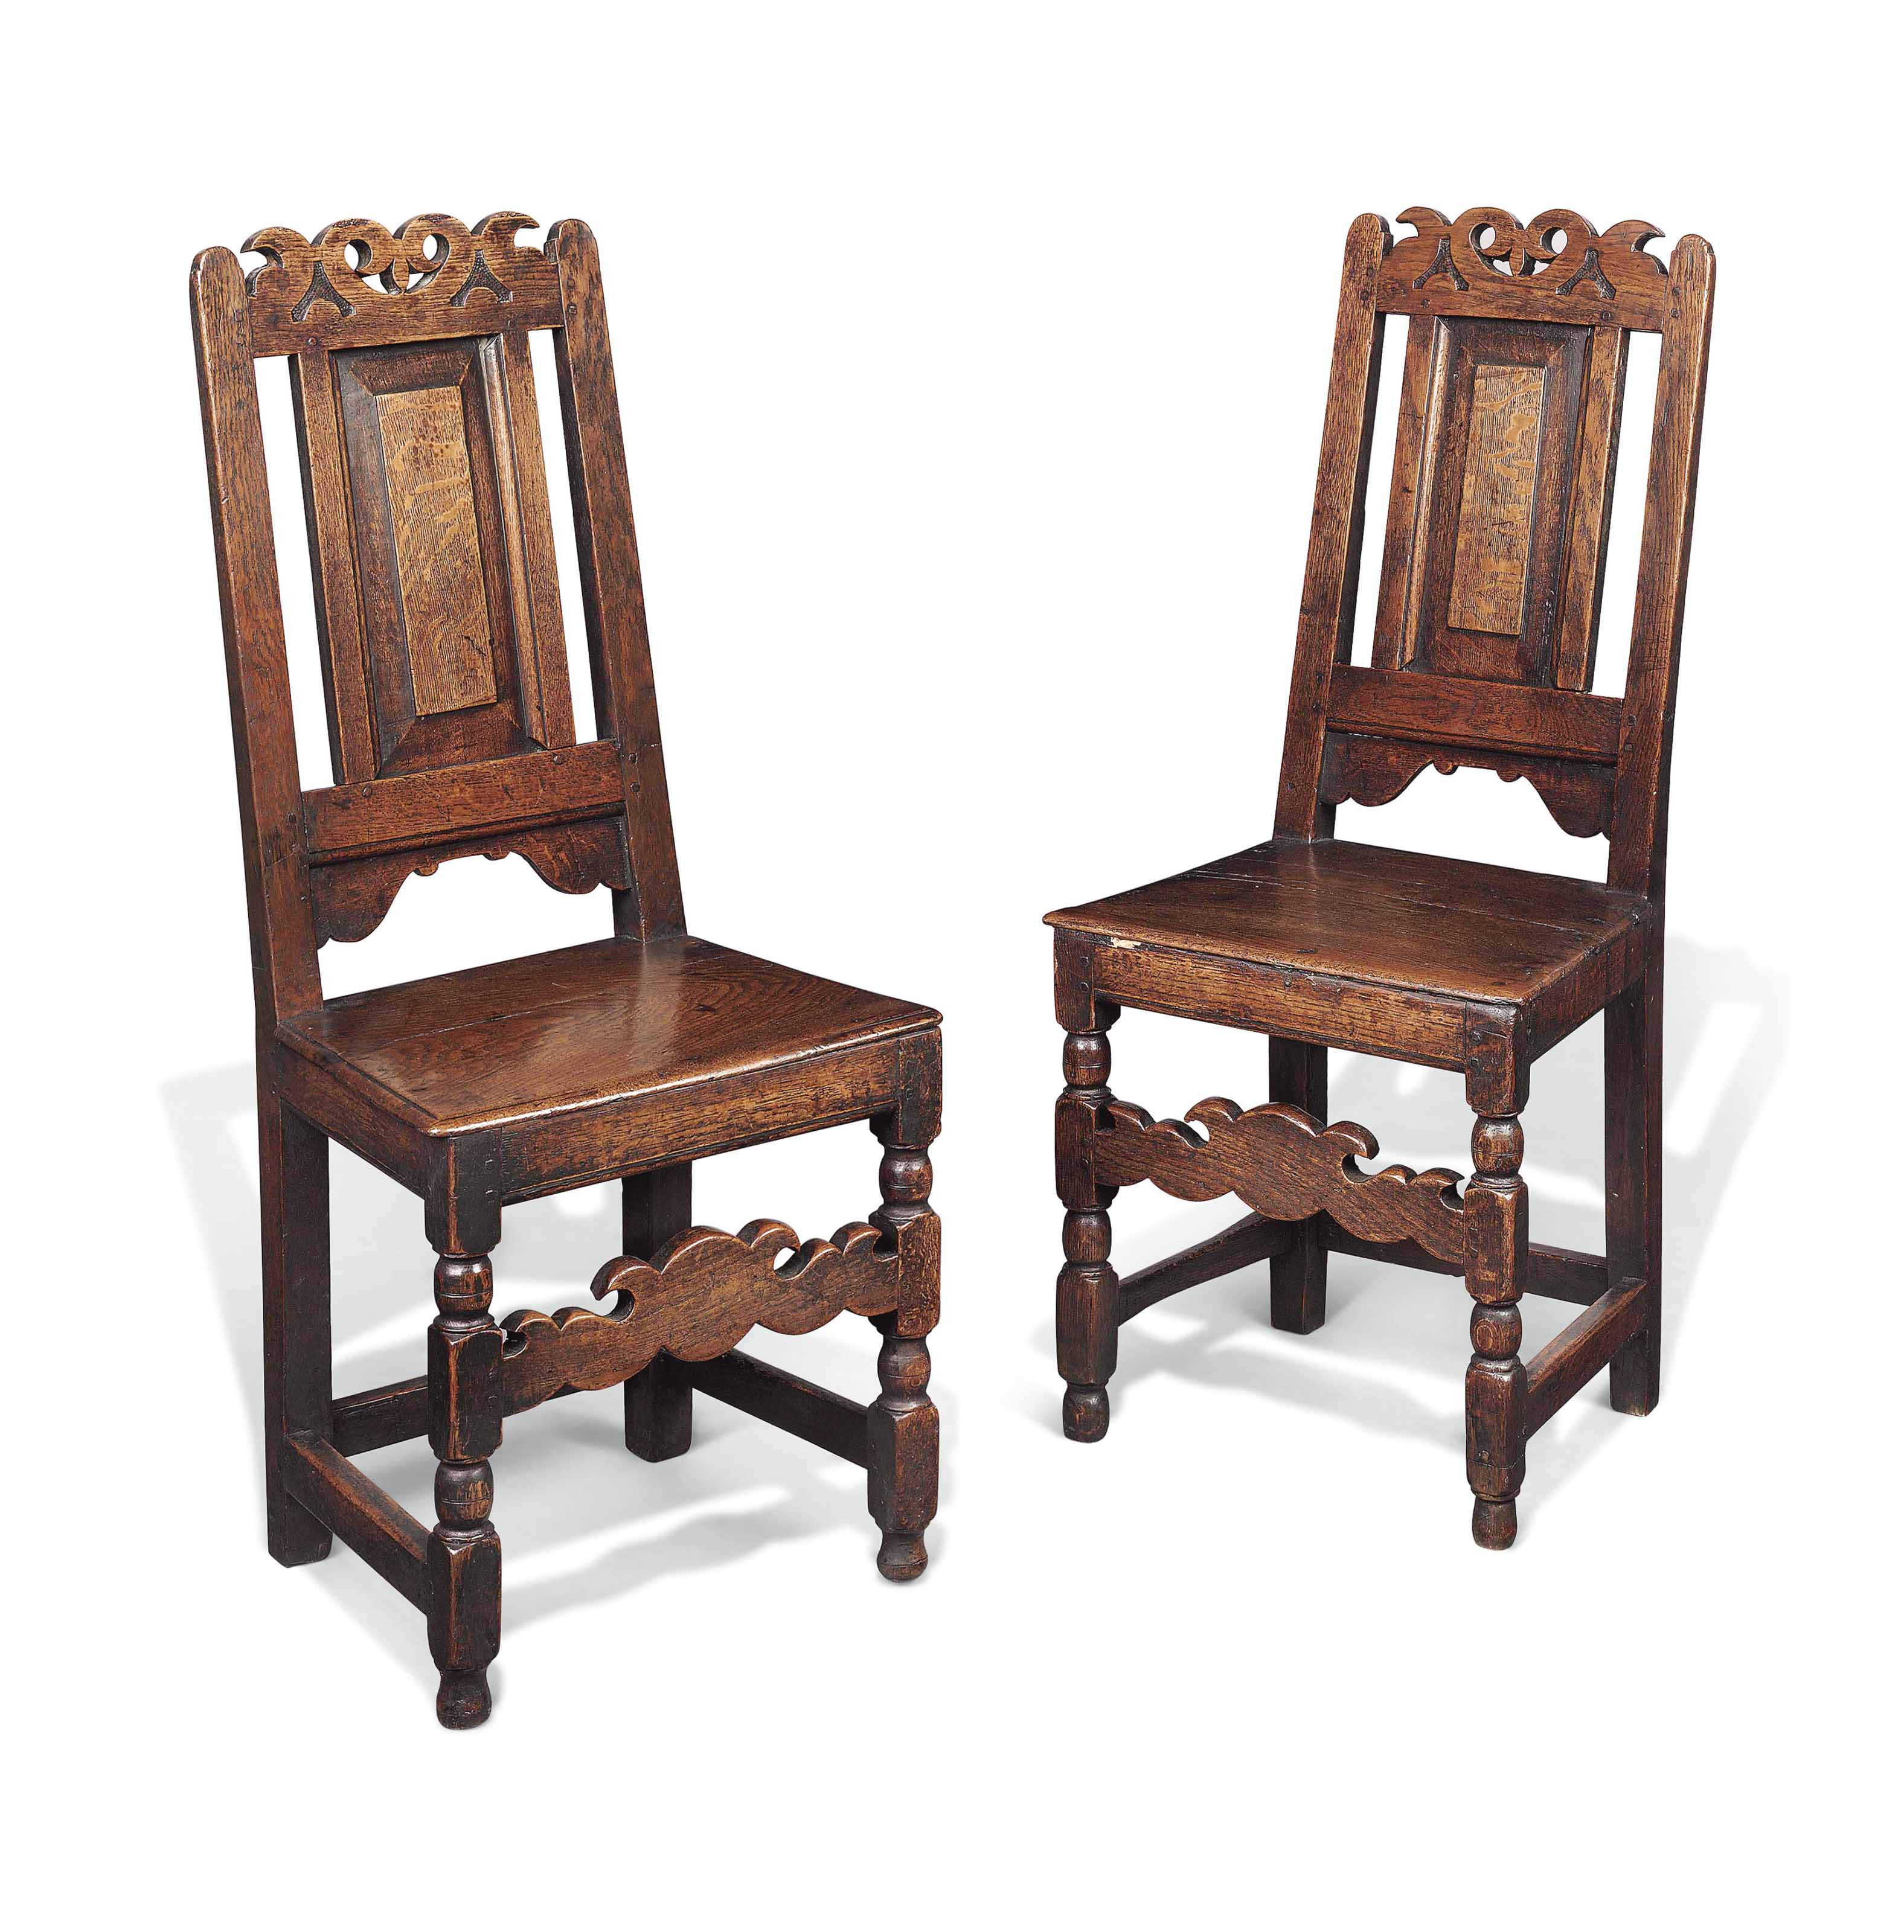 Phenomenal A Pair Of Queen Anne Oak Chairs Early 18Th Century Gamerscity Chair Design For Home Gamerscityorg